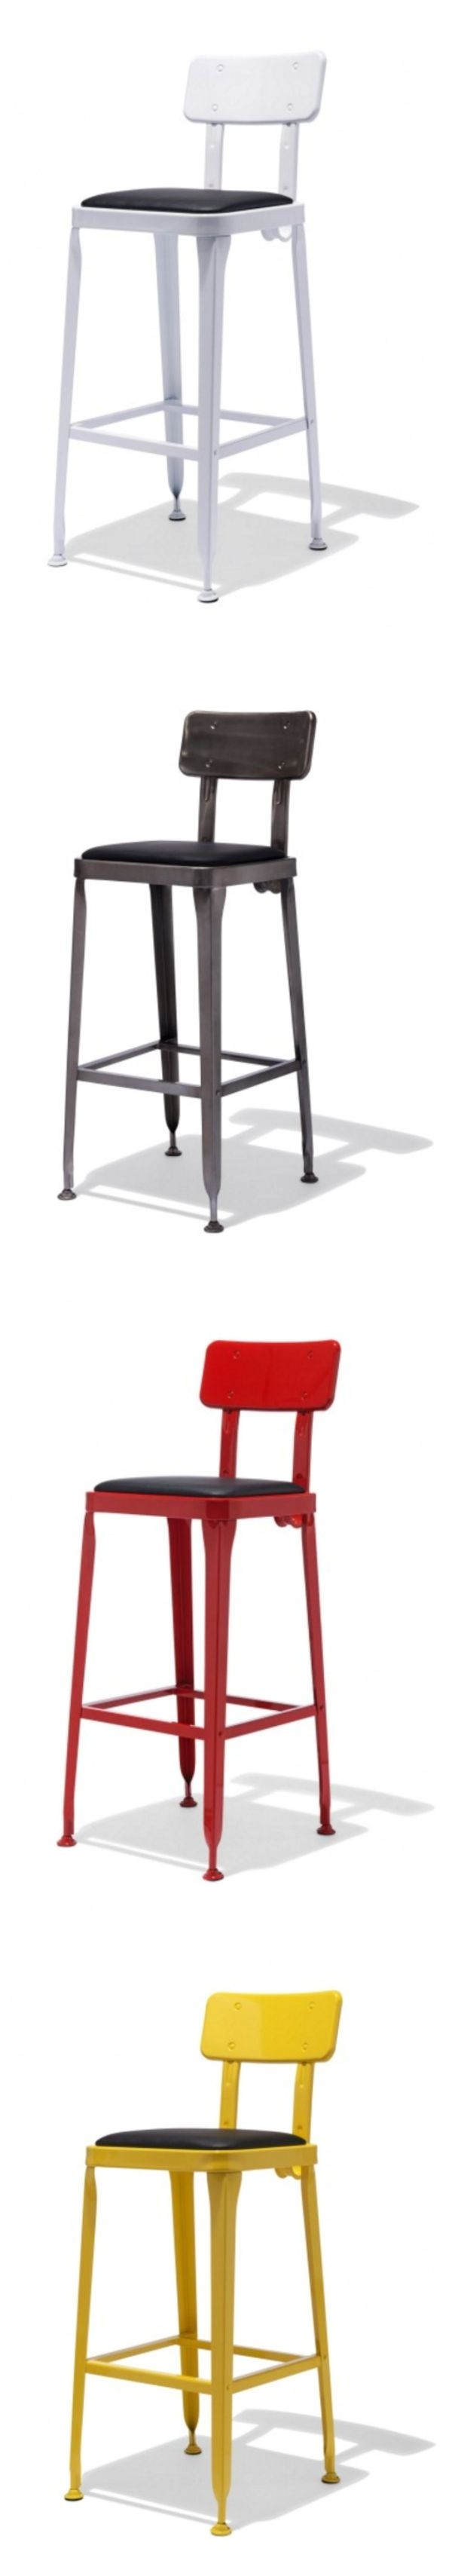 Industry West Octane Bar Stool Octane Bar Stools From Industry West Stools Pinterest